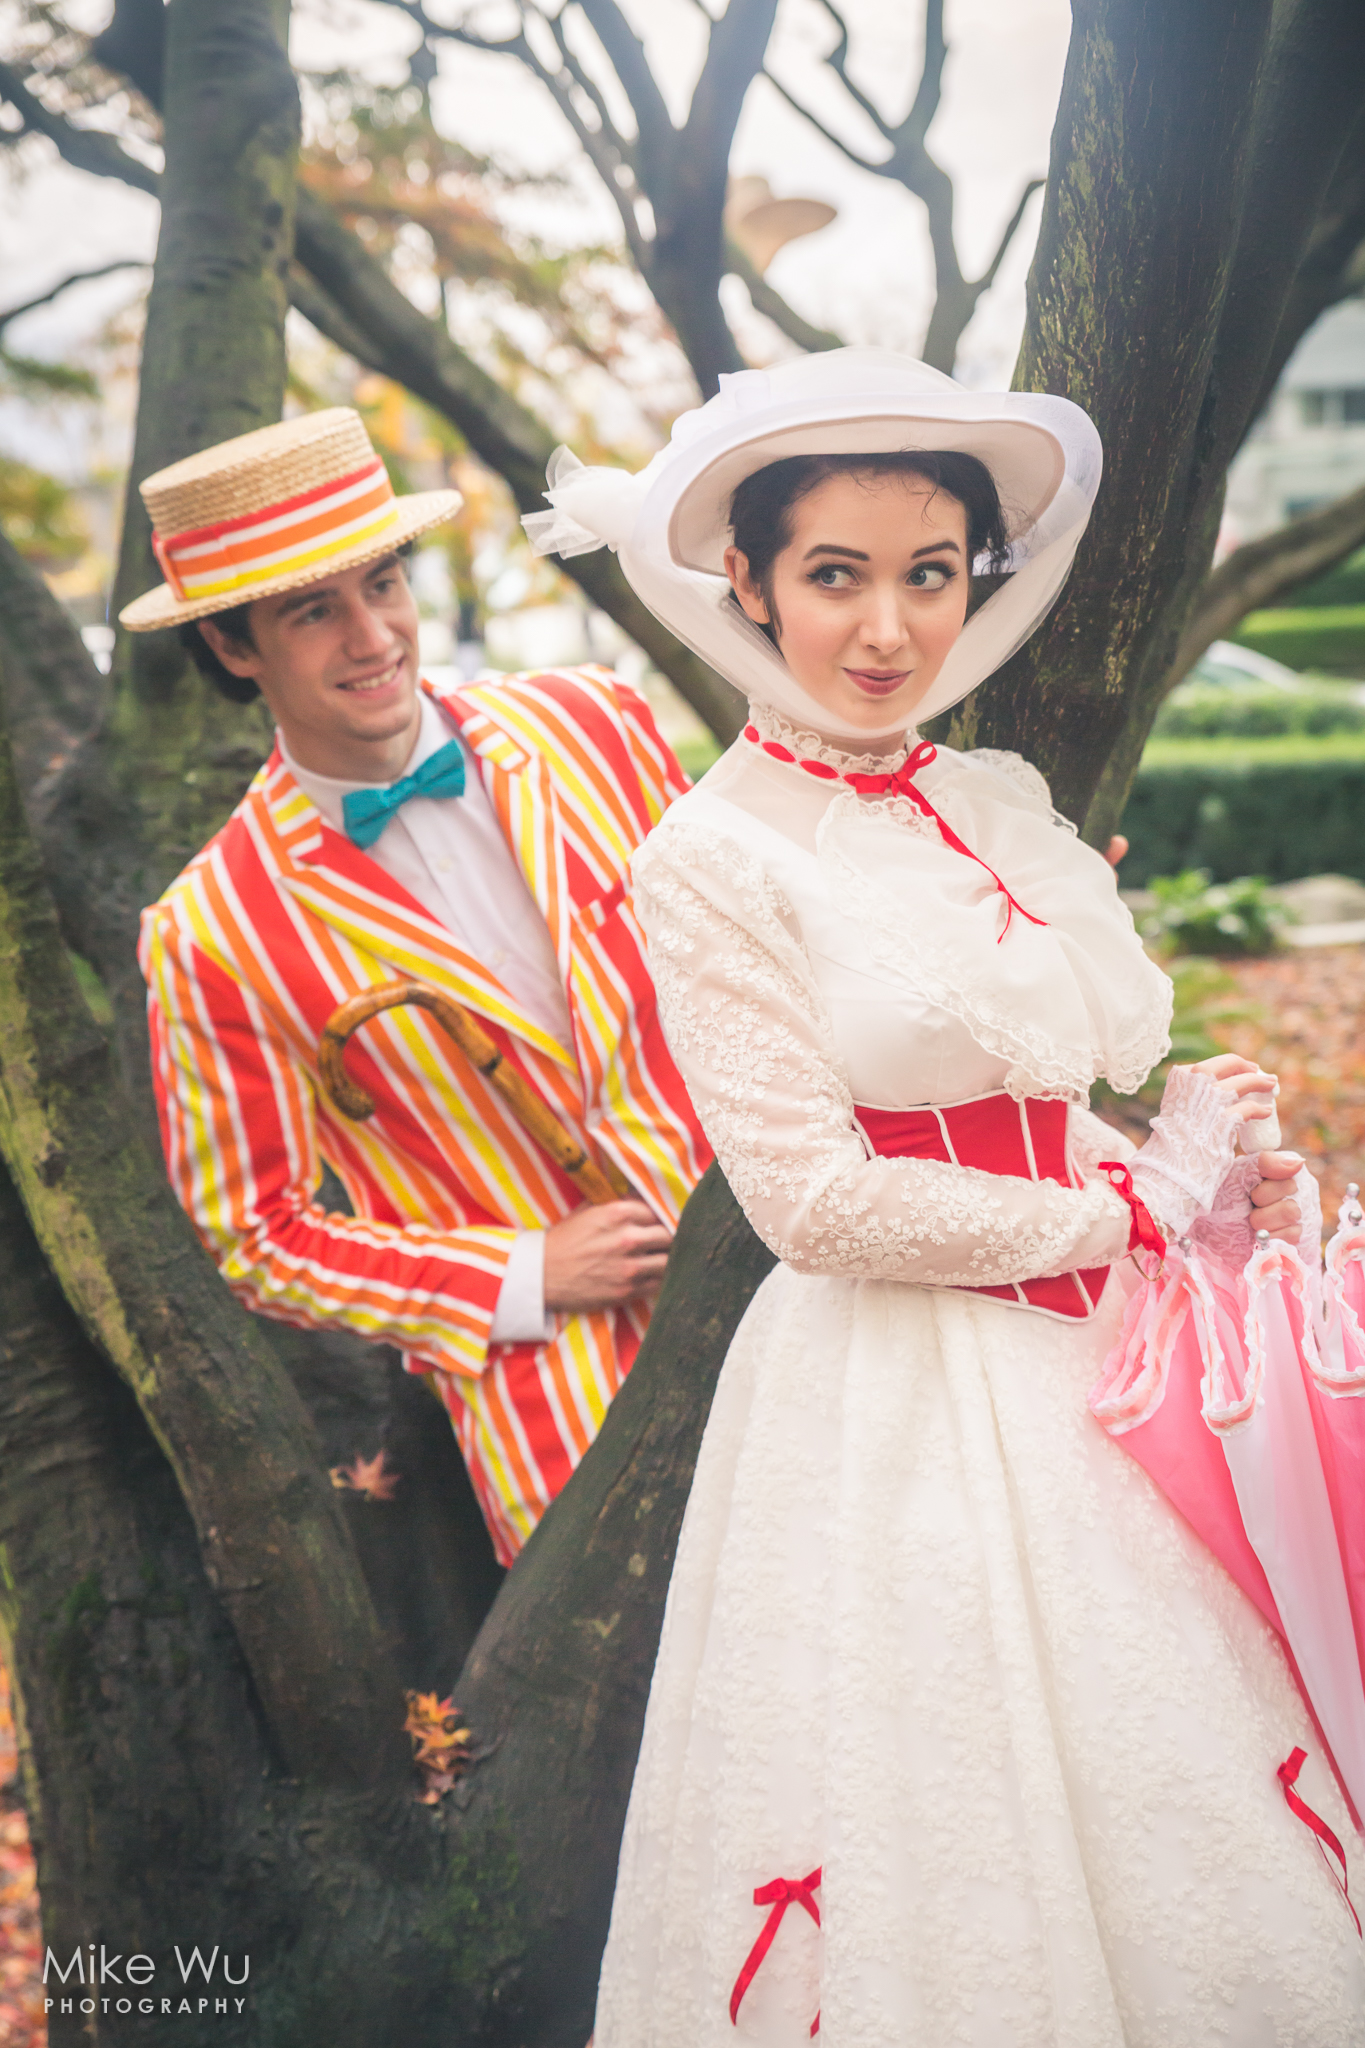 cosplay, mary poppins, bert, couple, pair, classic, movie, mimi reaves, dick charming